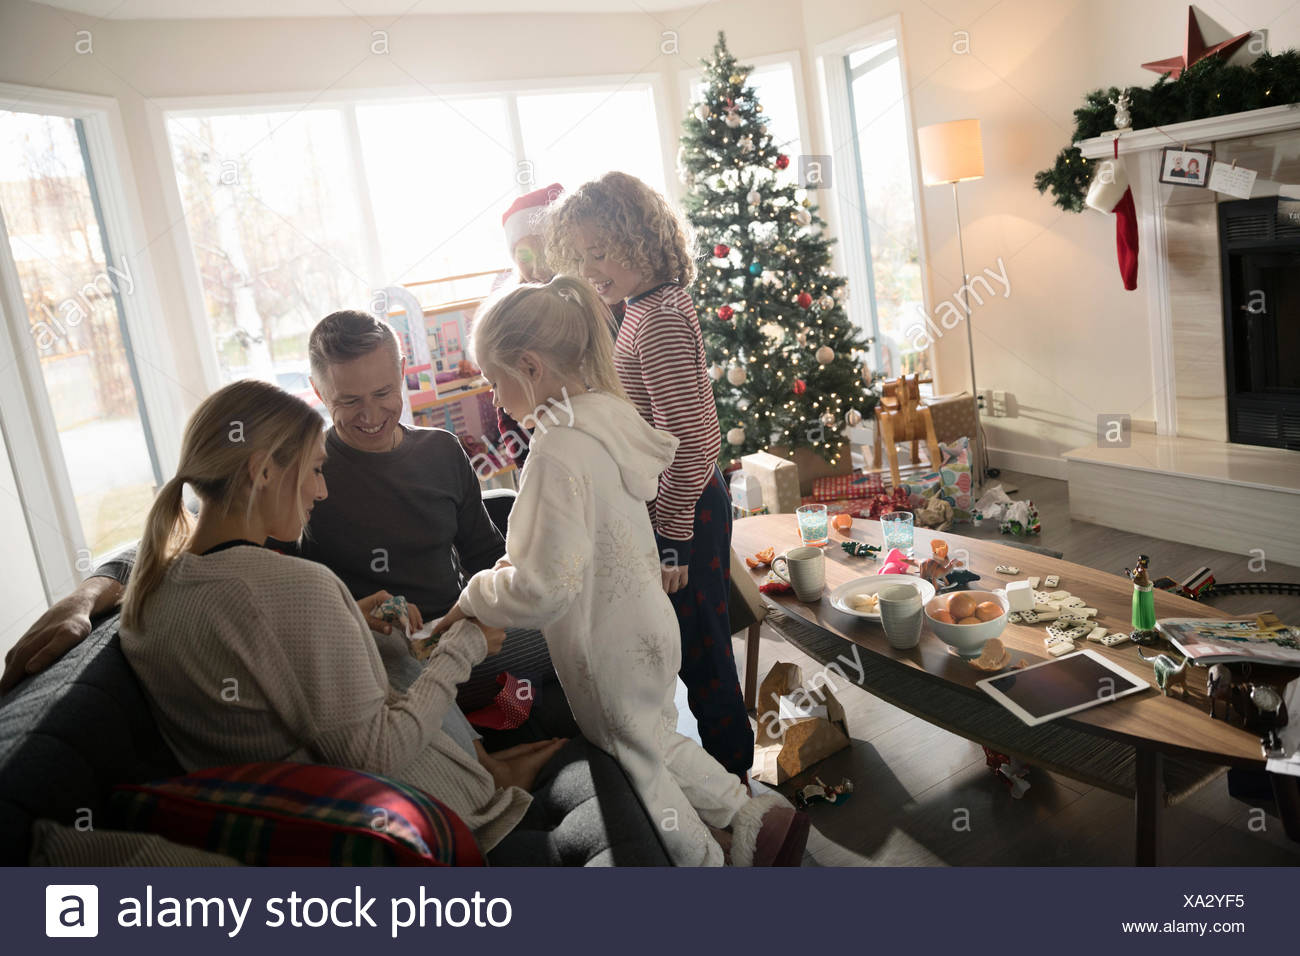 Family opening Christmas gift in living room - Stock Image